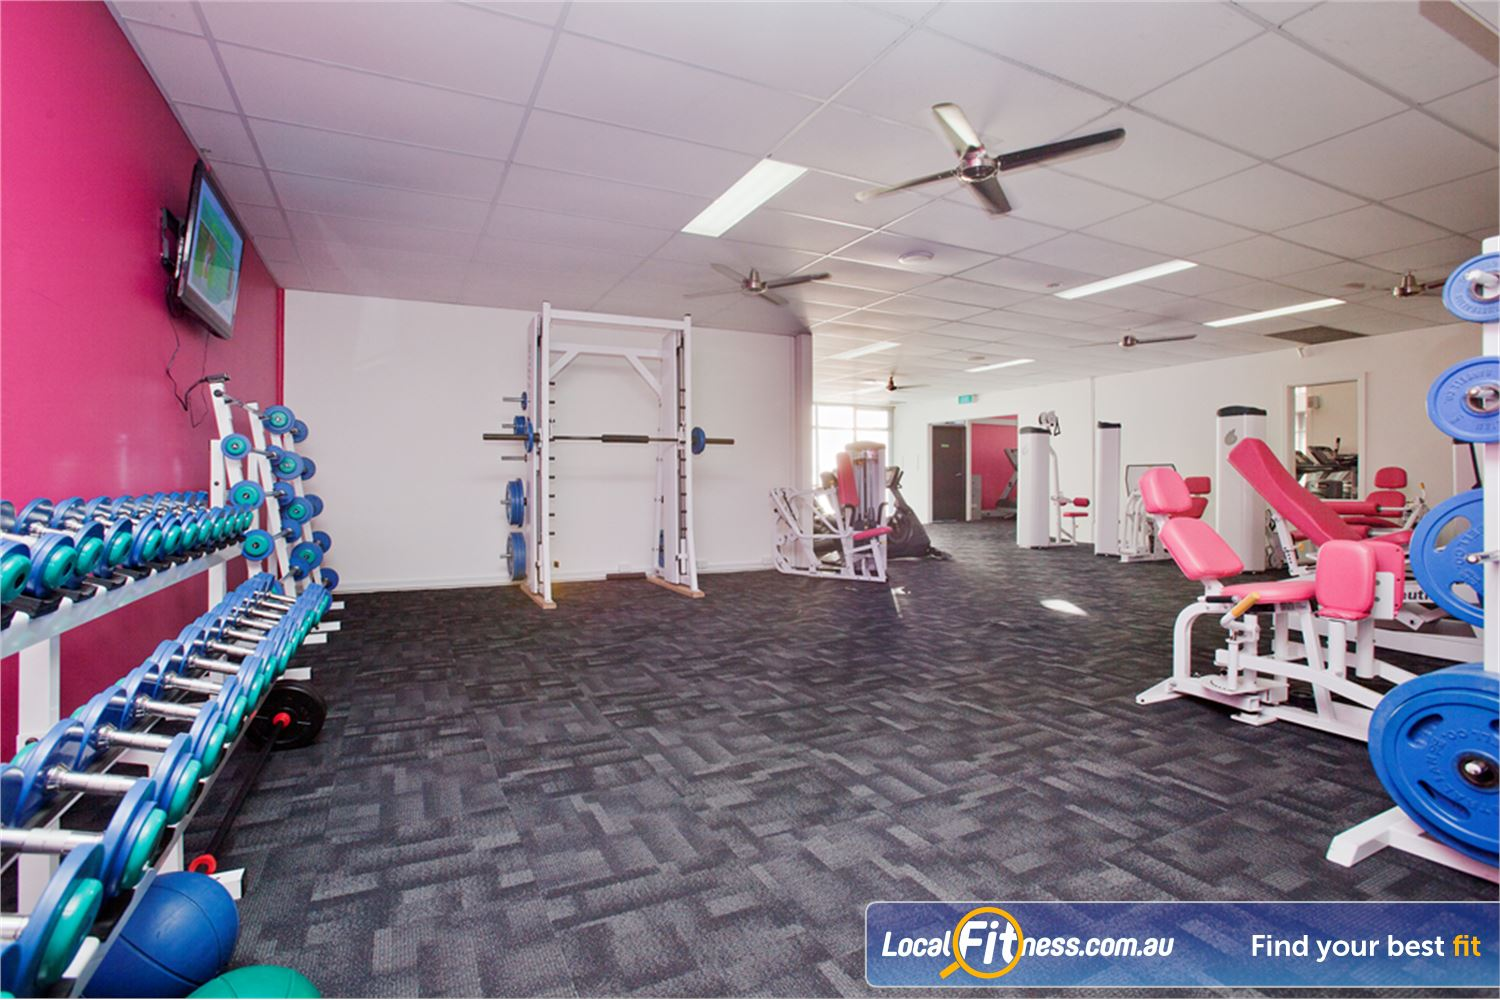 Fernwood Fitness Yarraville We provide the right fitness and weights to help women lose weight.